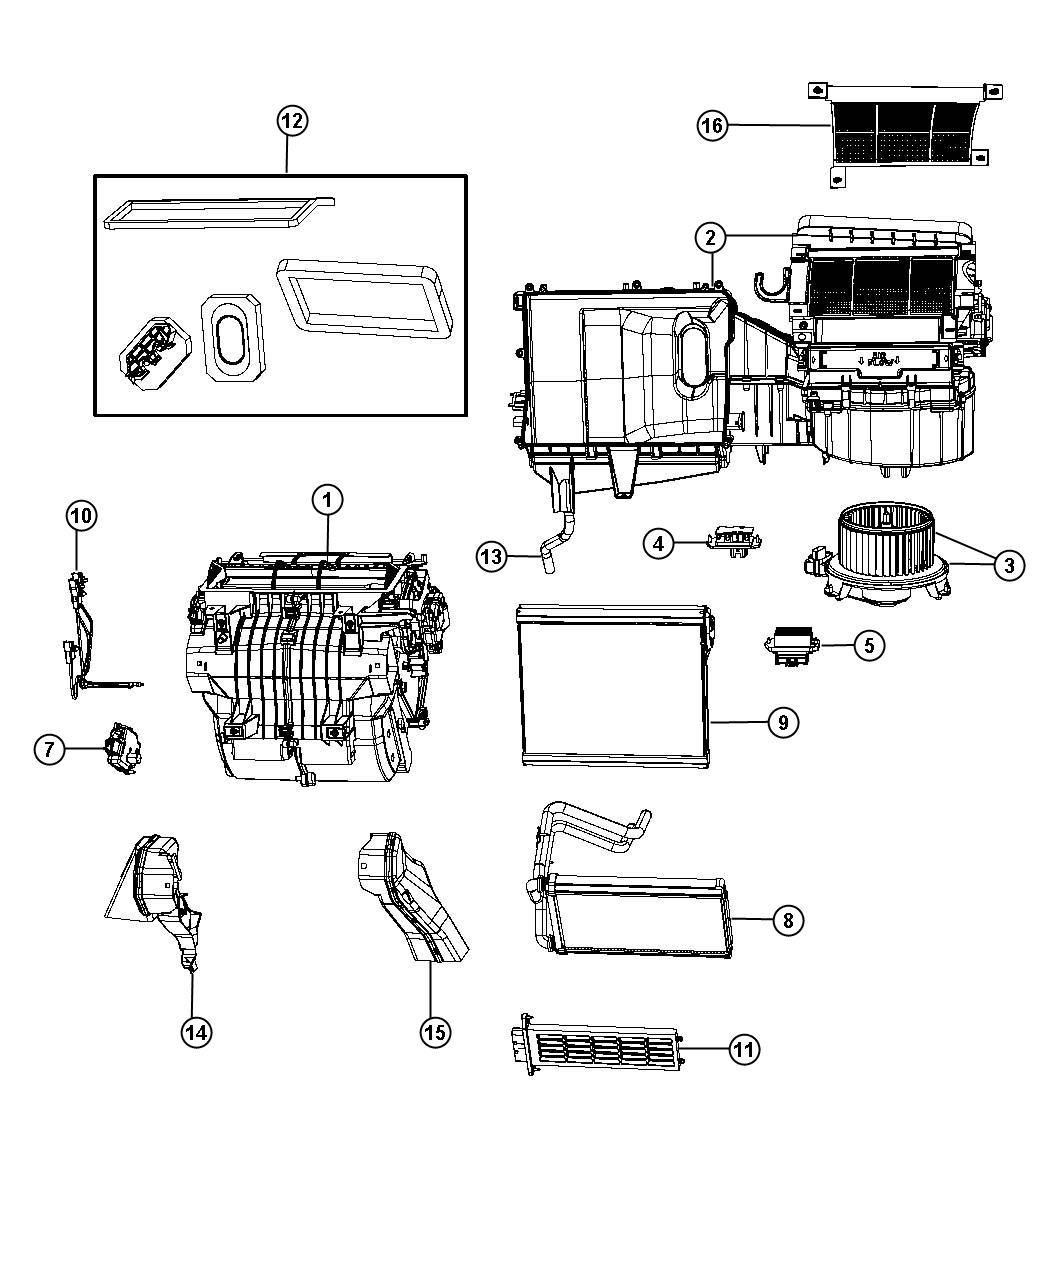 service manual  heater core replacement on a 2008 dodge